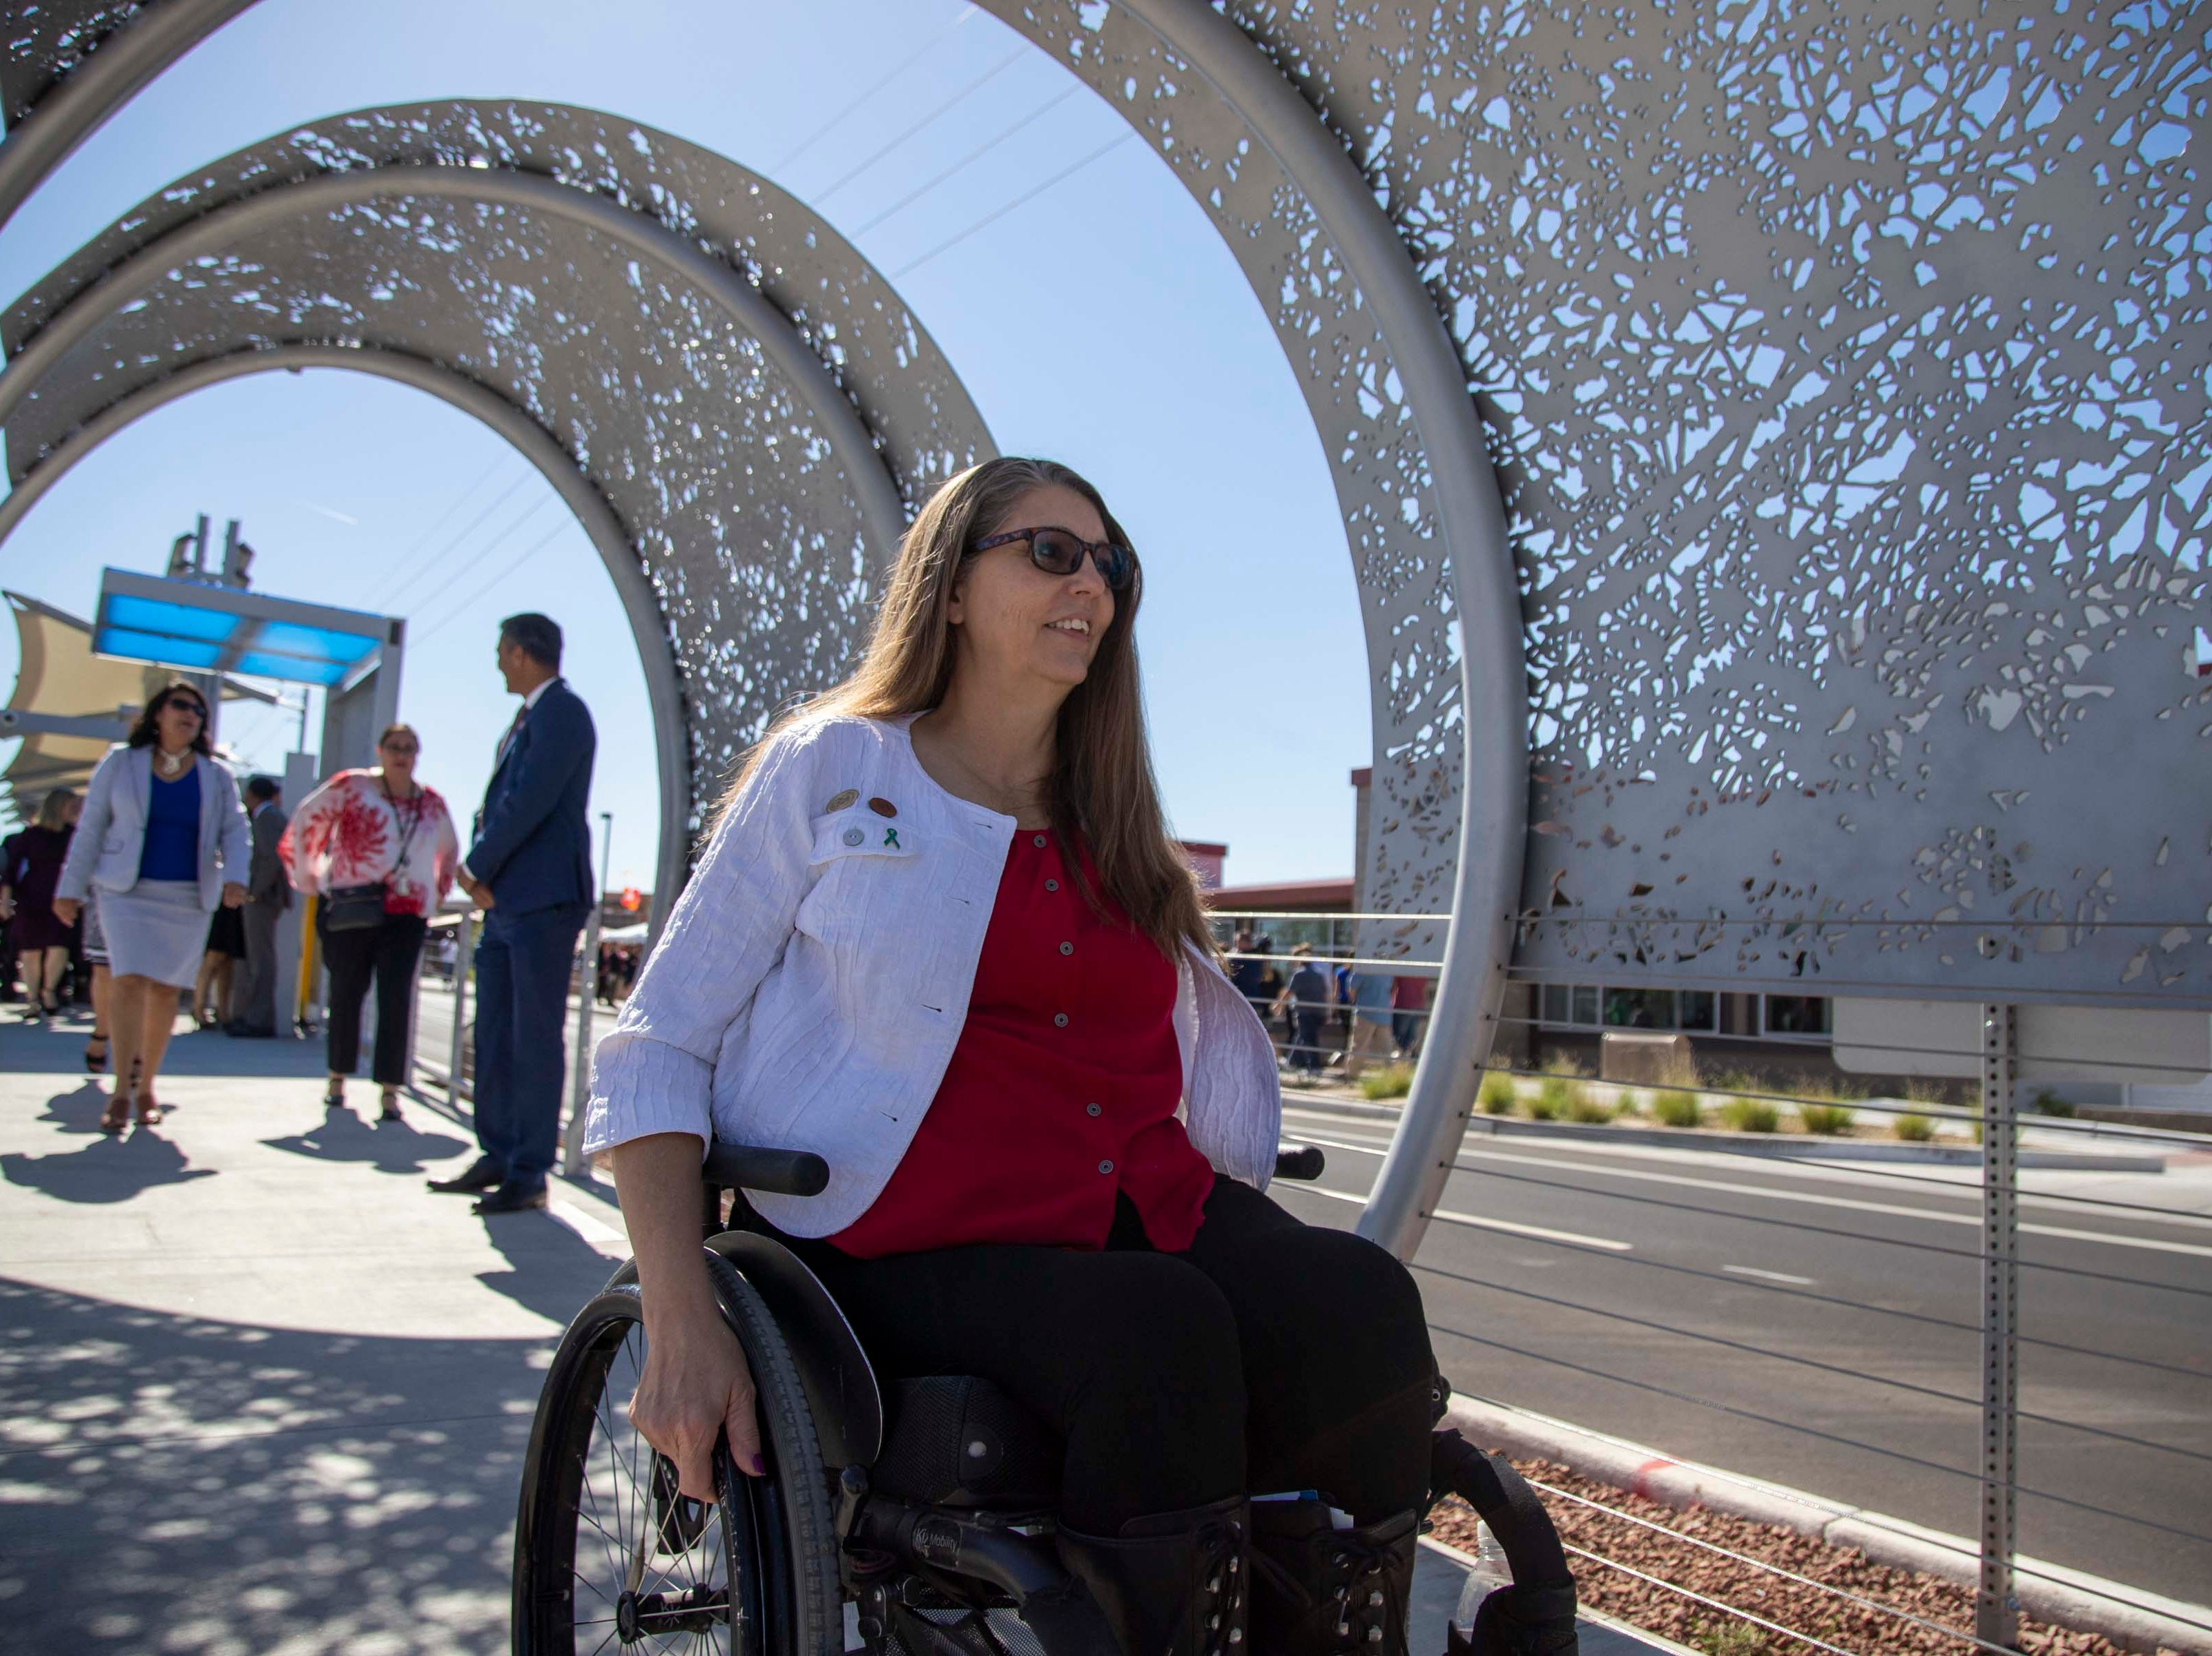 State Rep. Jennifer Longdon, D-Phoenix,  during the unveiling of the new 50th Street and Washington light rail station, which will provide additional access to Ability 360, one of Arizona's largest disability resource centers.